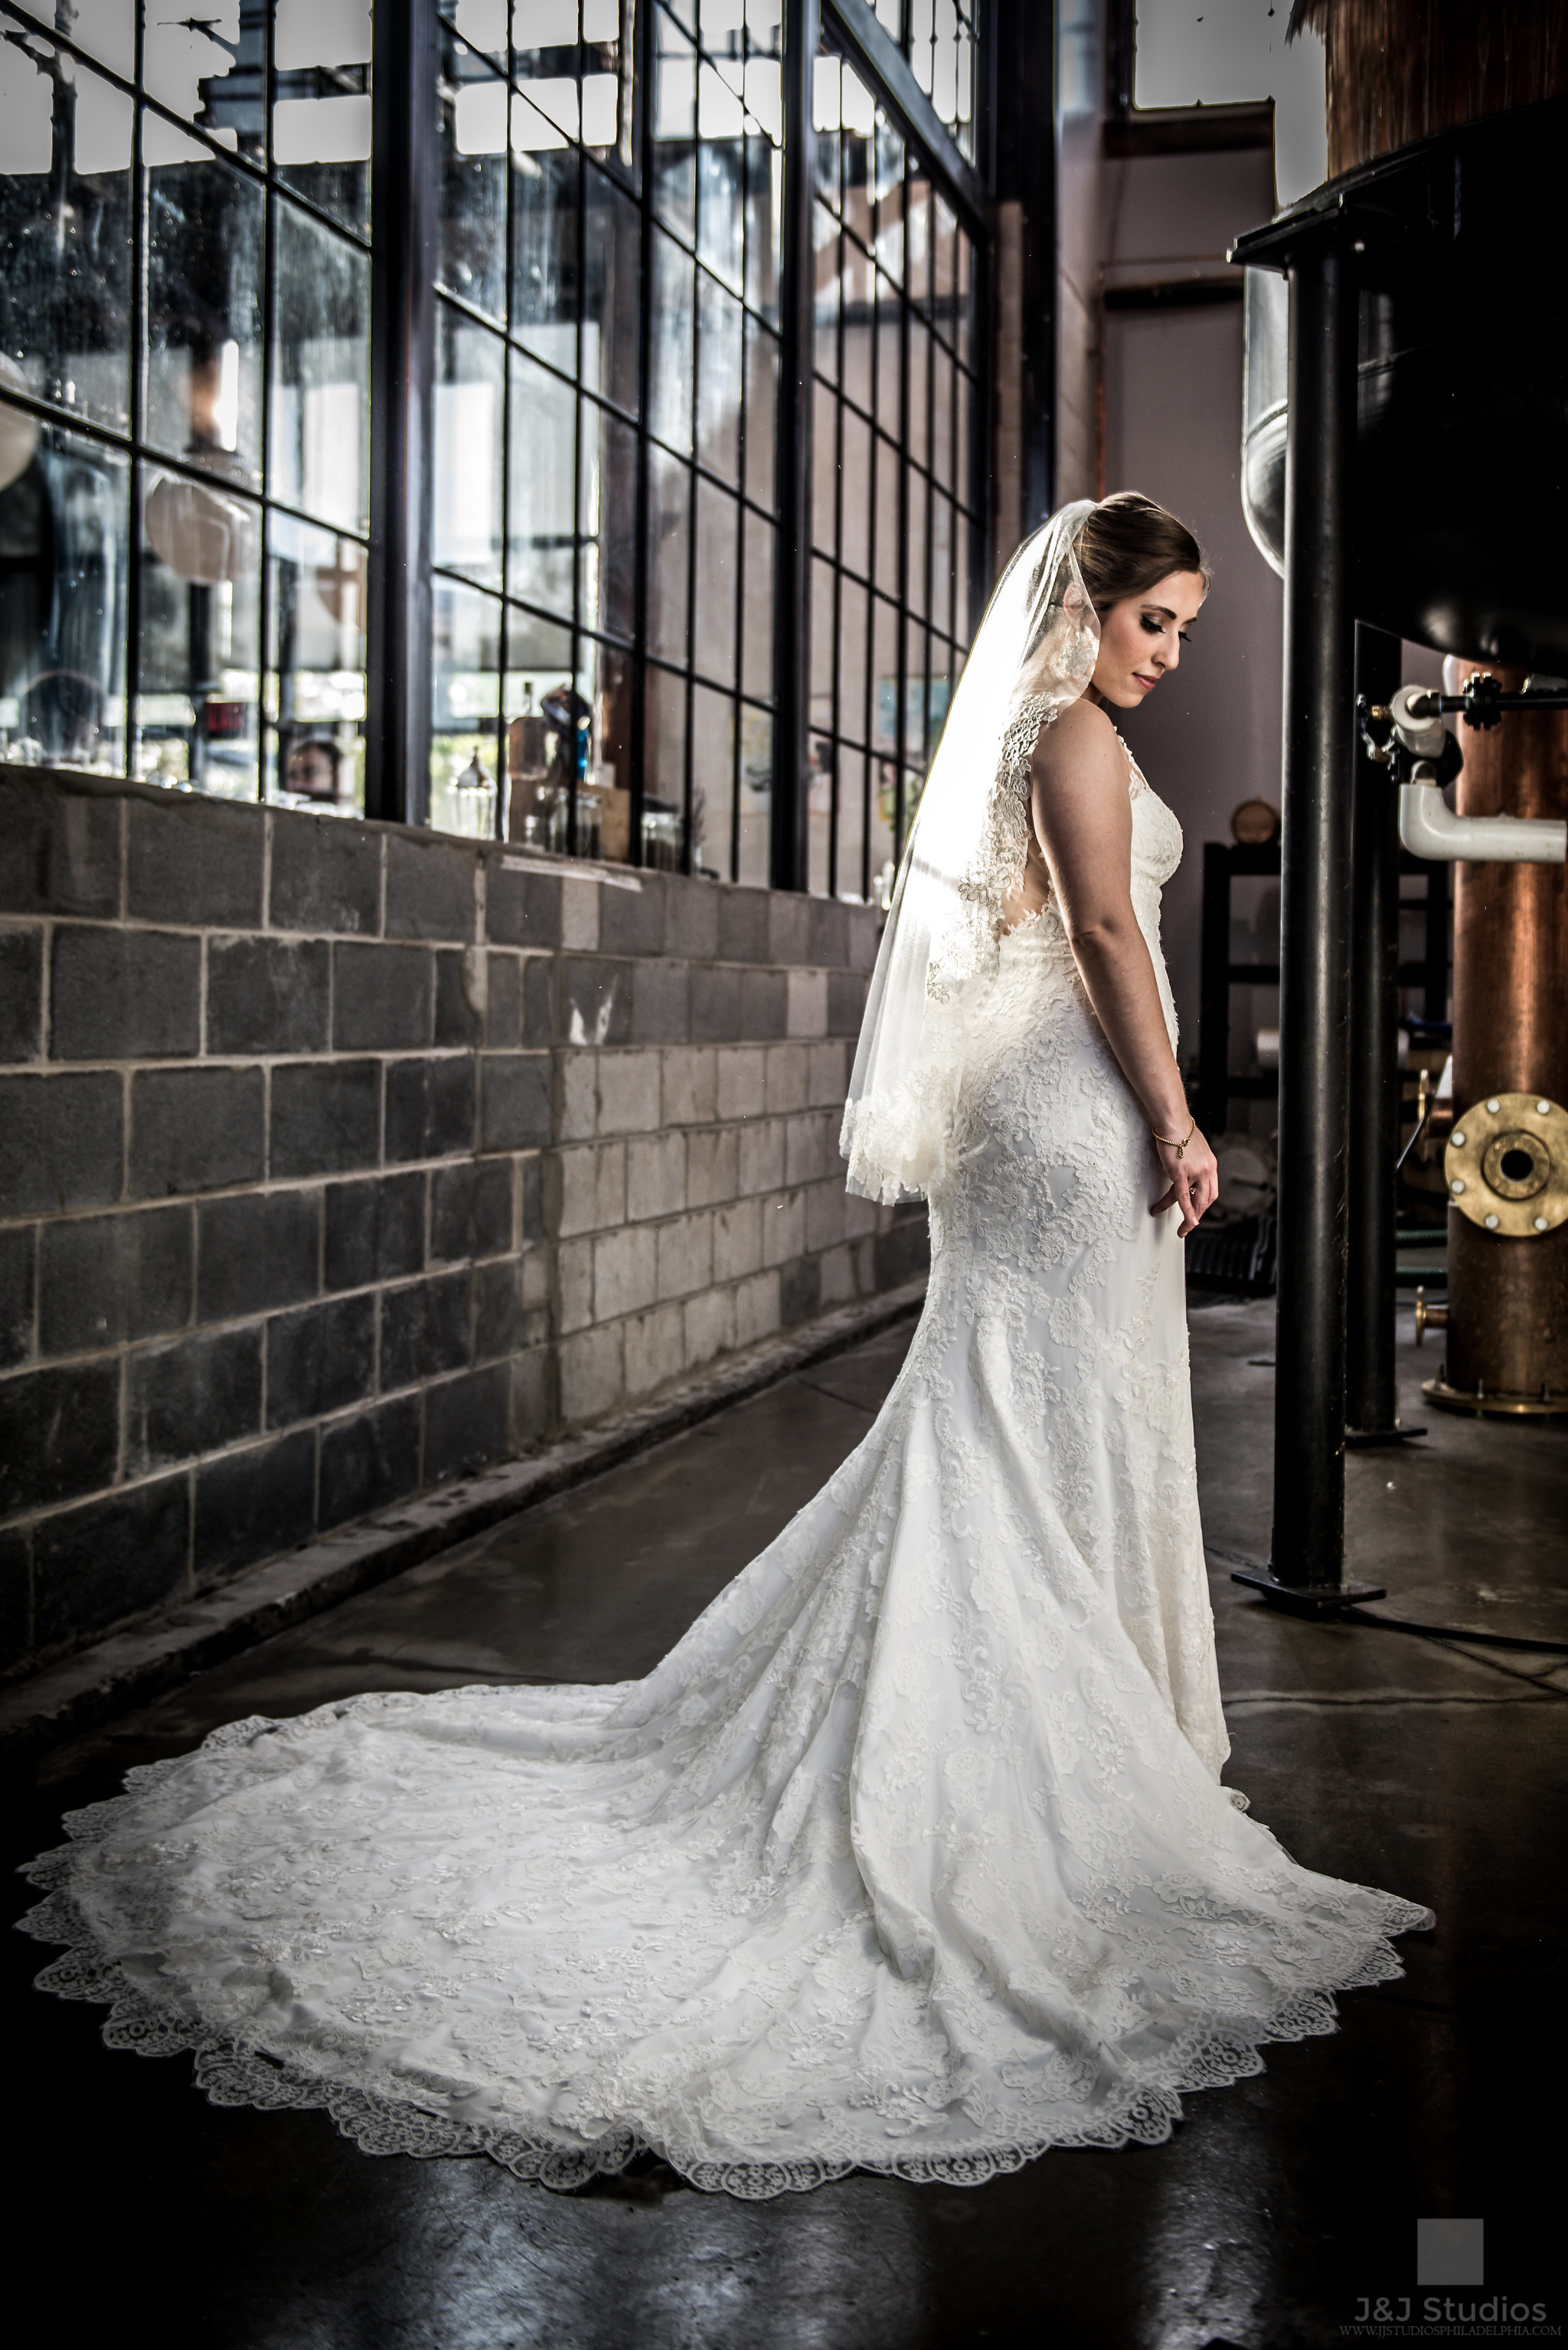 bride at philadelphia distilling